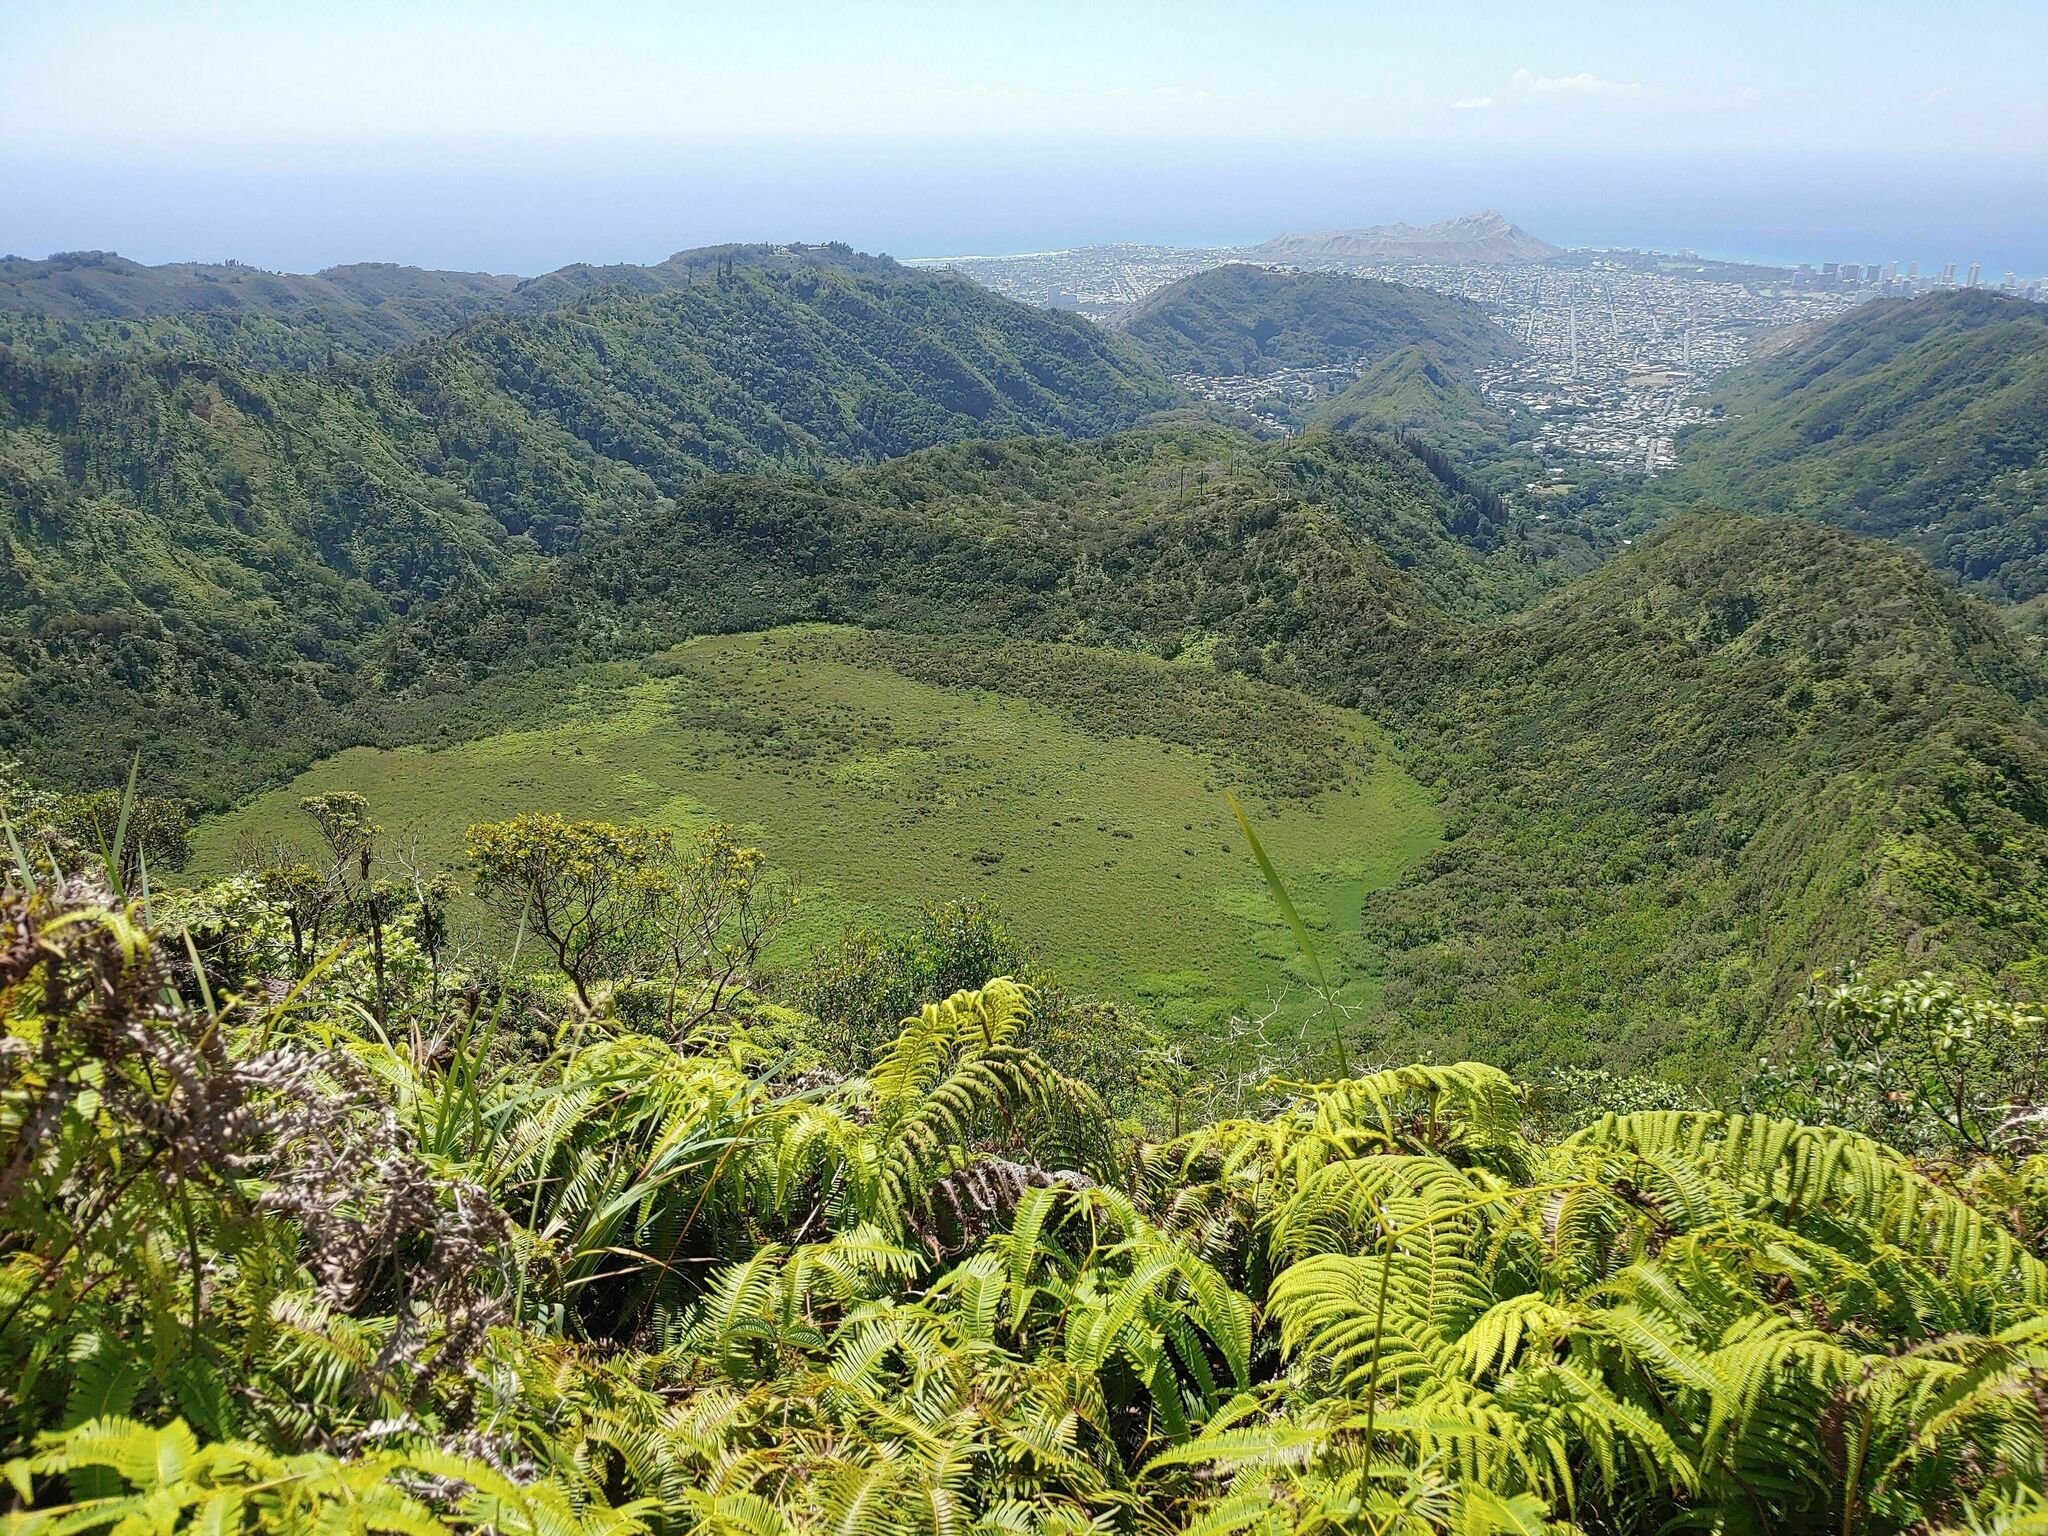 Embark On An Epic 7.3-Mile Trail In Hawaii That Features Waterfalls And Jaw-Dropping Views